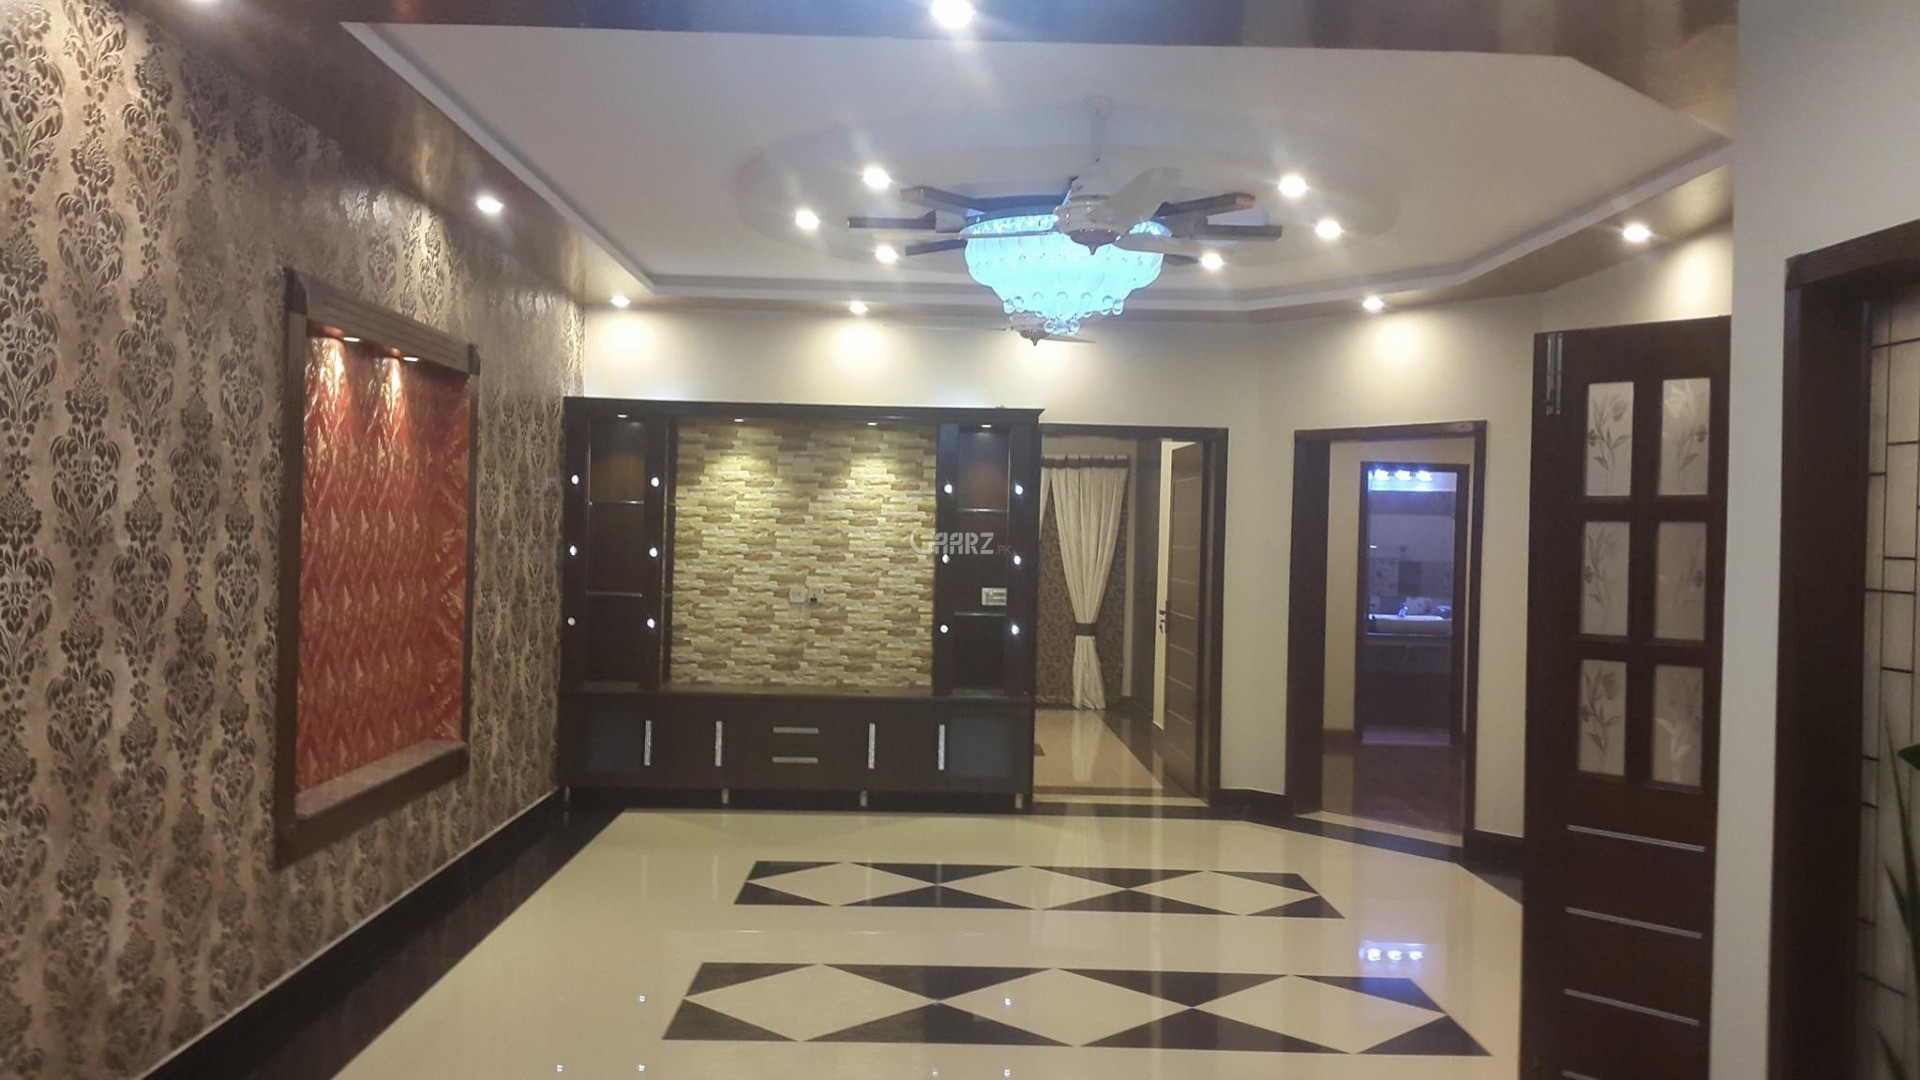 10 Marla House for Sale in Lahore Overseas A